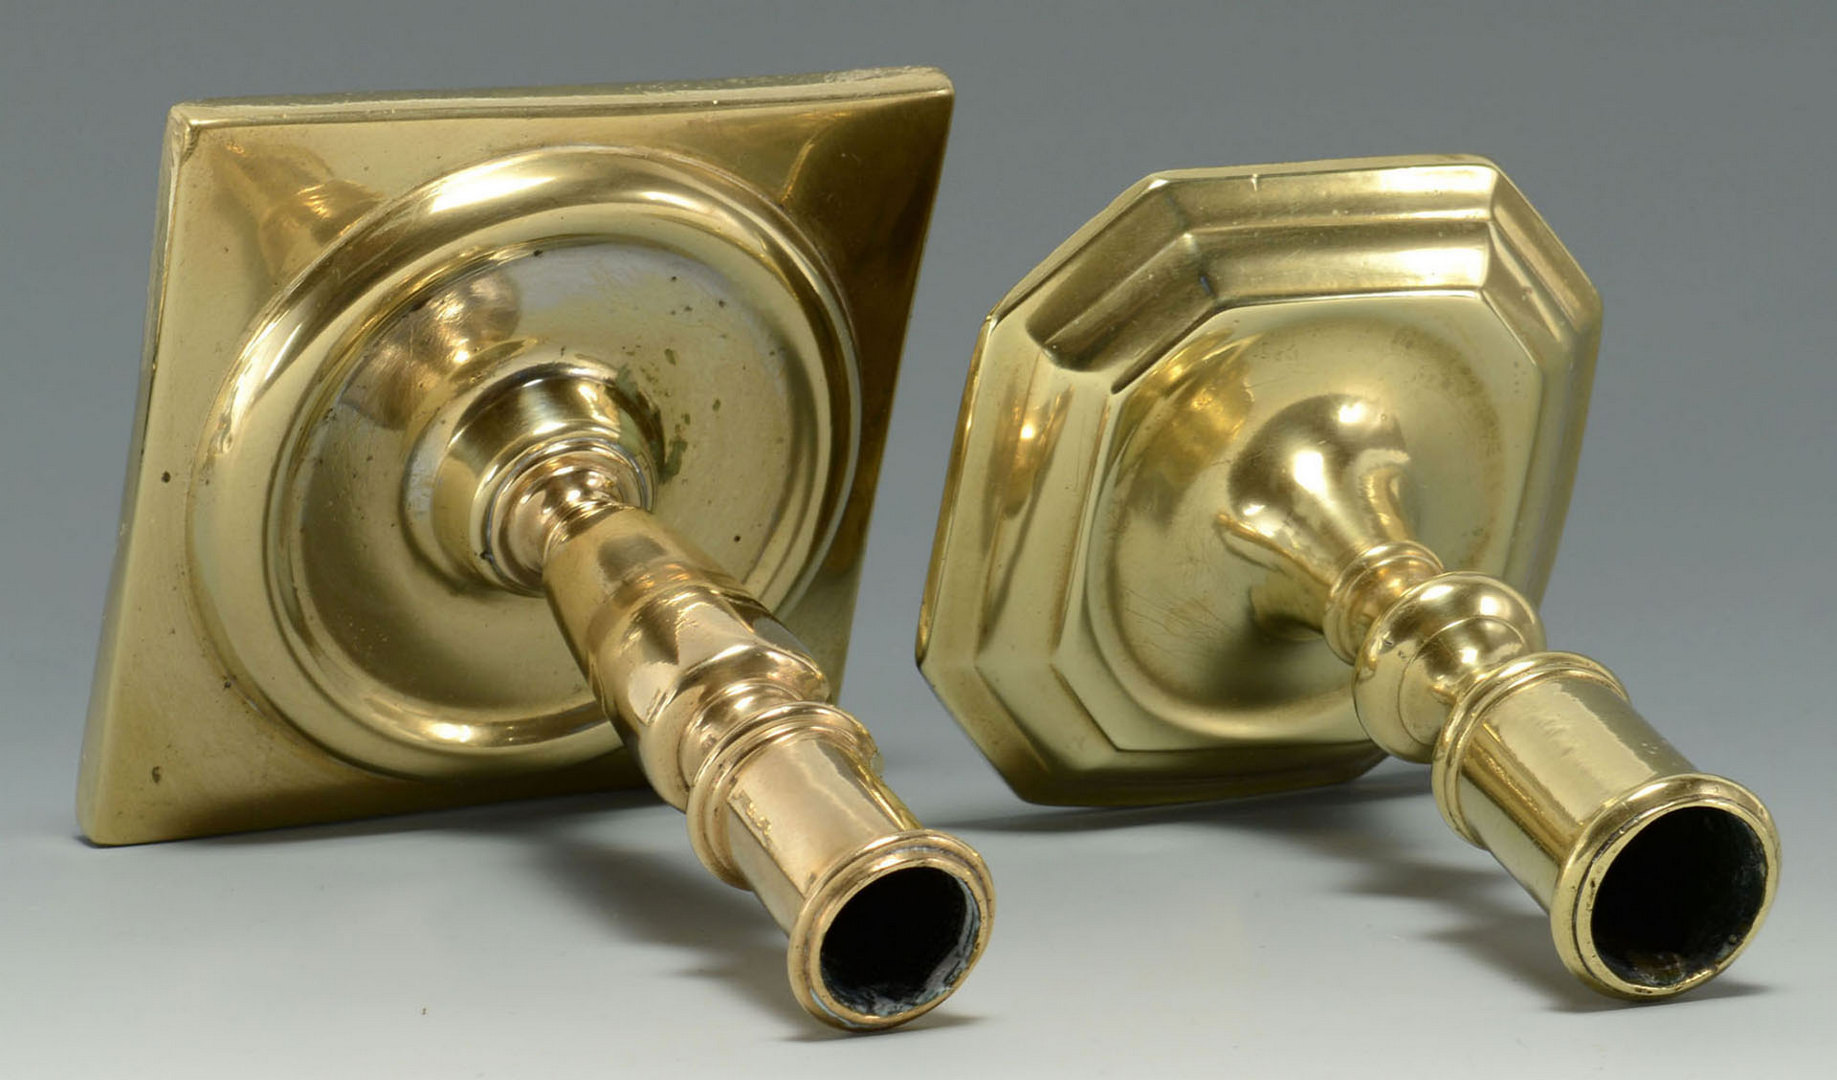 Lot 252: Four Brass Candlesticks of various forms